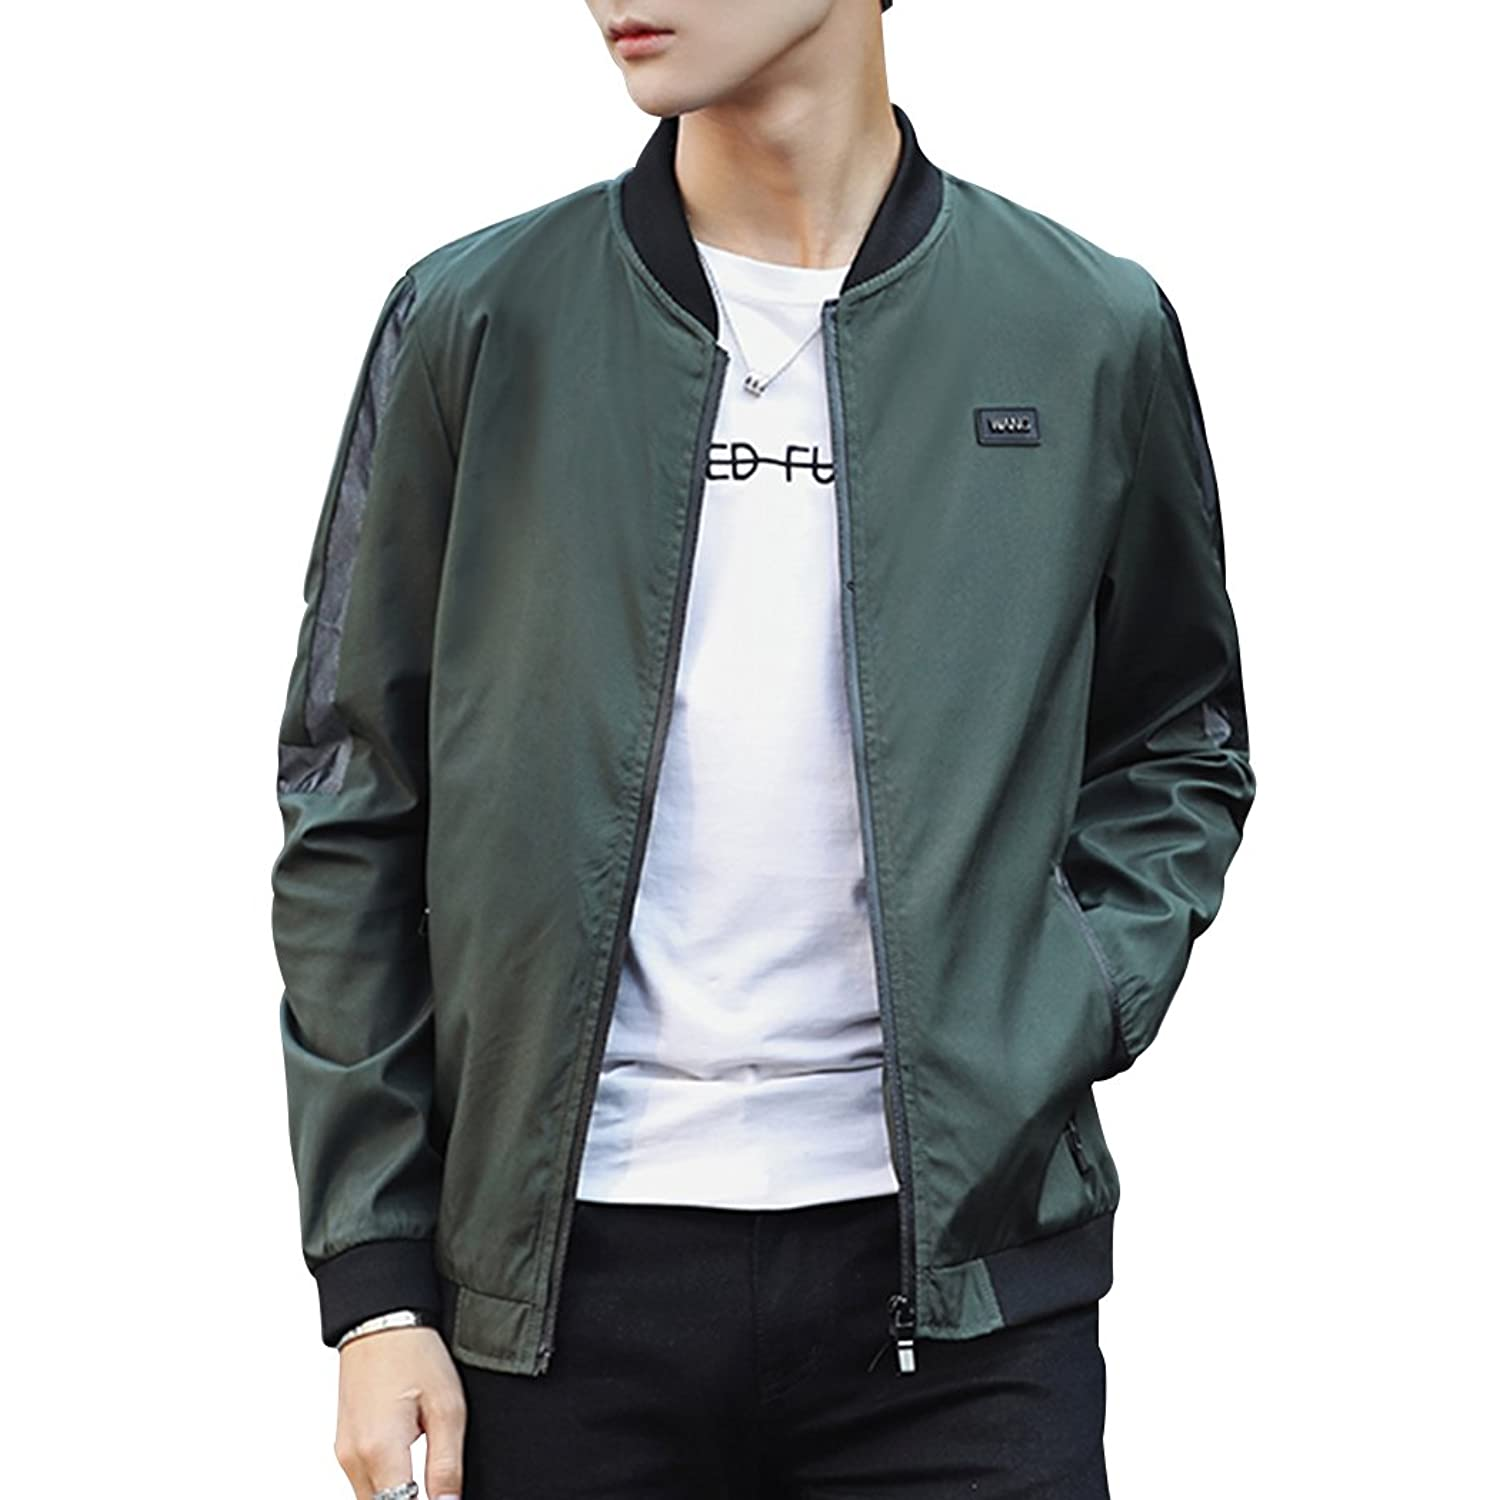 493575187c3198 Top 10 wholesale Bomber Jacket With Design On Back - Chinabrands.com